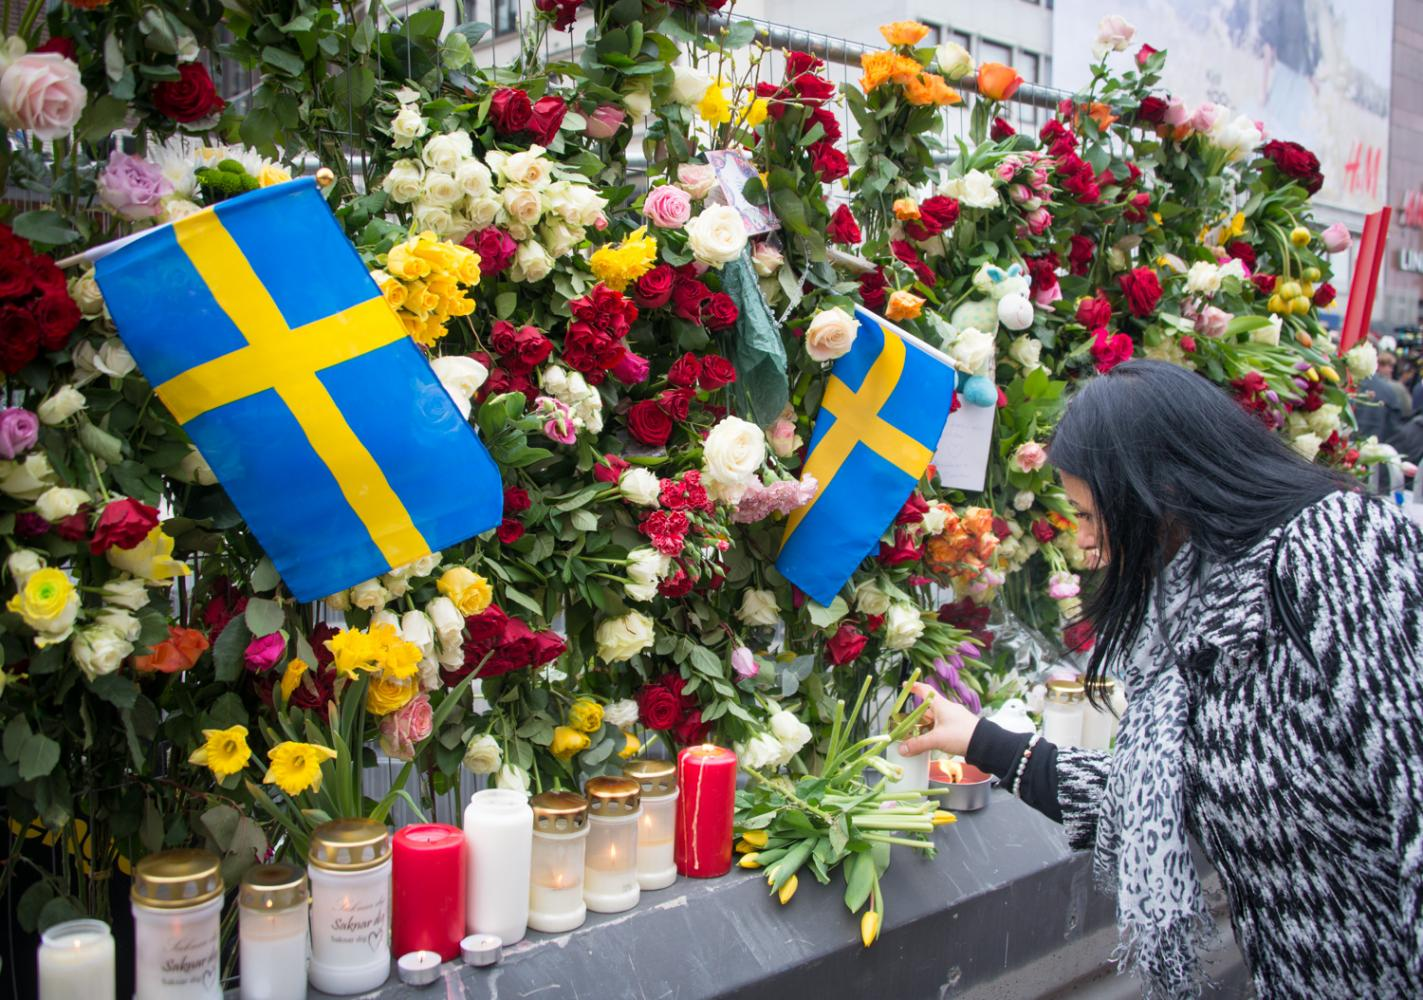 The day after the terrorist attack in Stockholm (Photo provided by By Frankie Fouganthin).